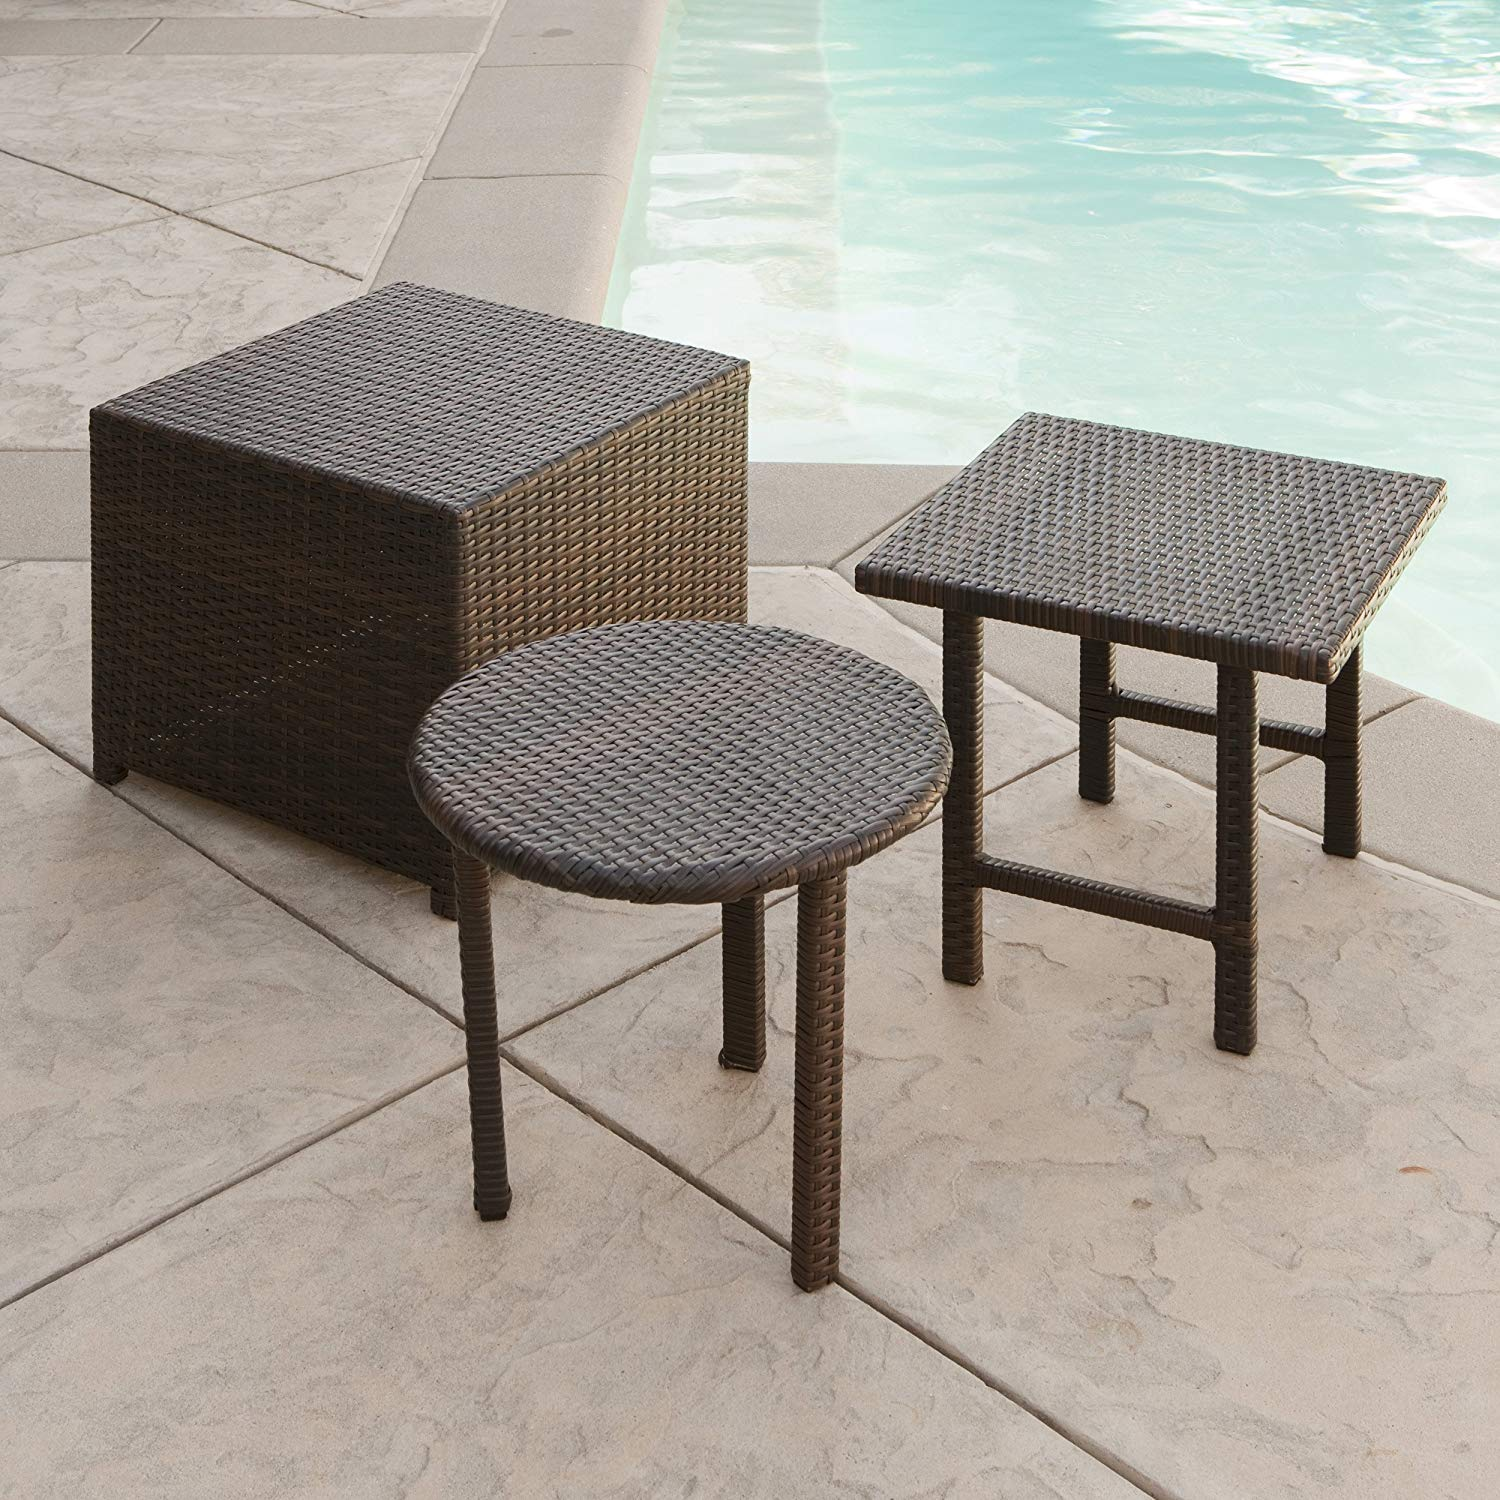 best selling palmilla wicker table set multibrown outdoor side and chairs patio tables garden small wine rack white umbrella gray dining room black gloss console ott storage box